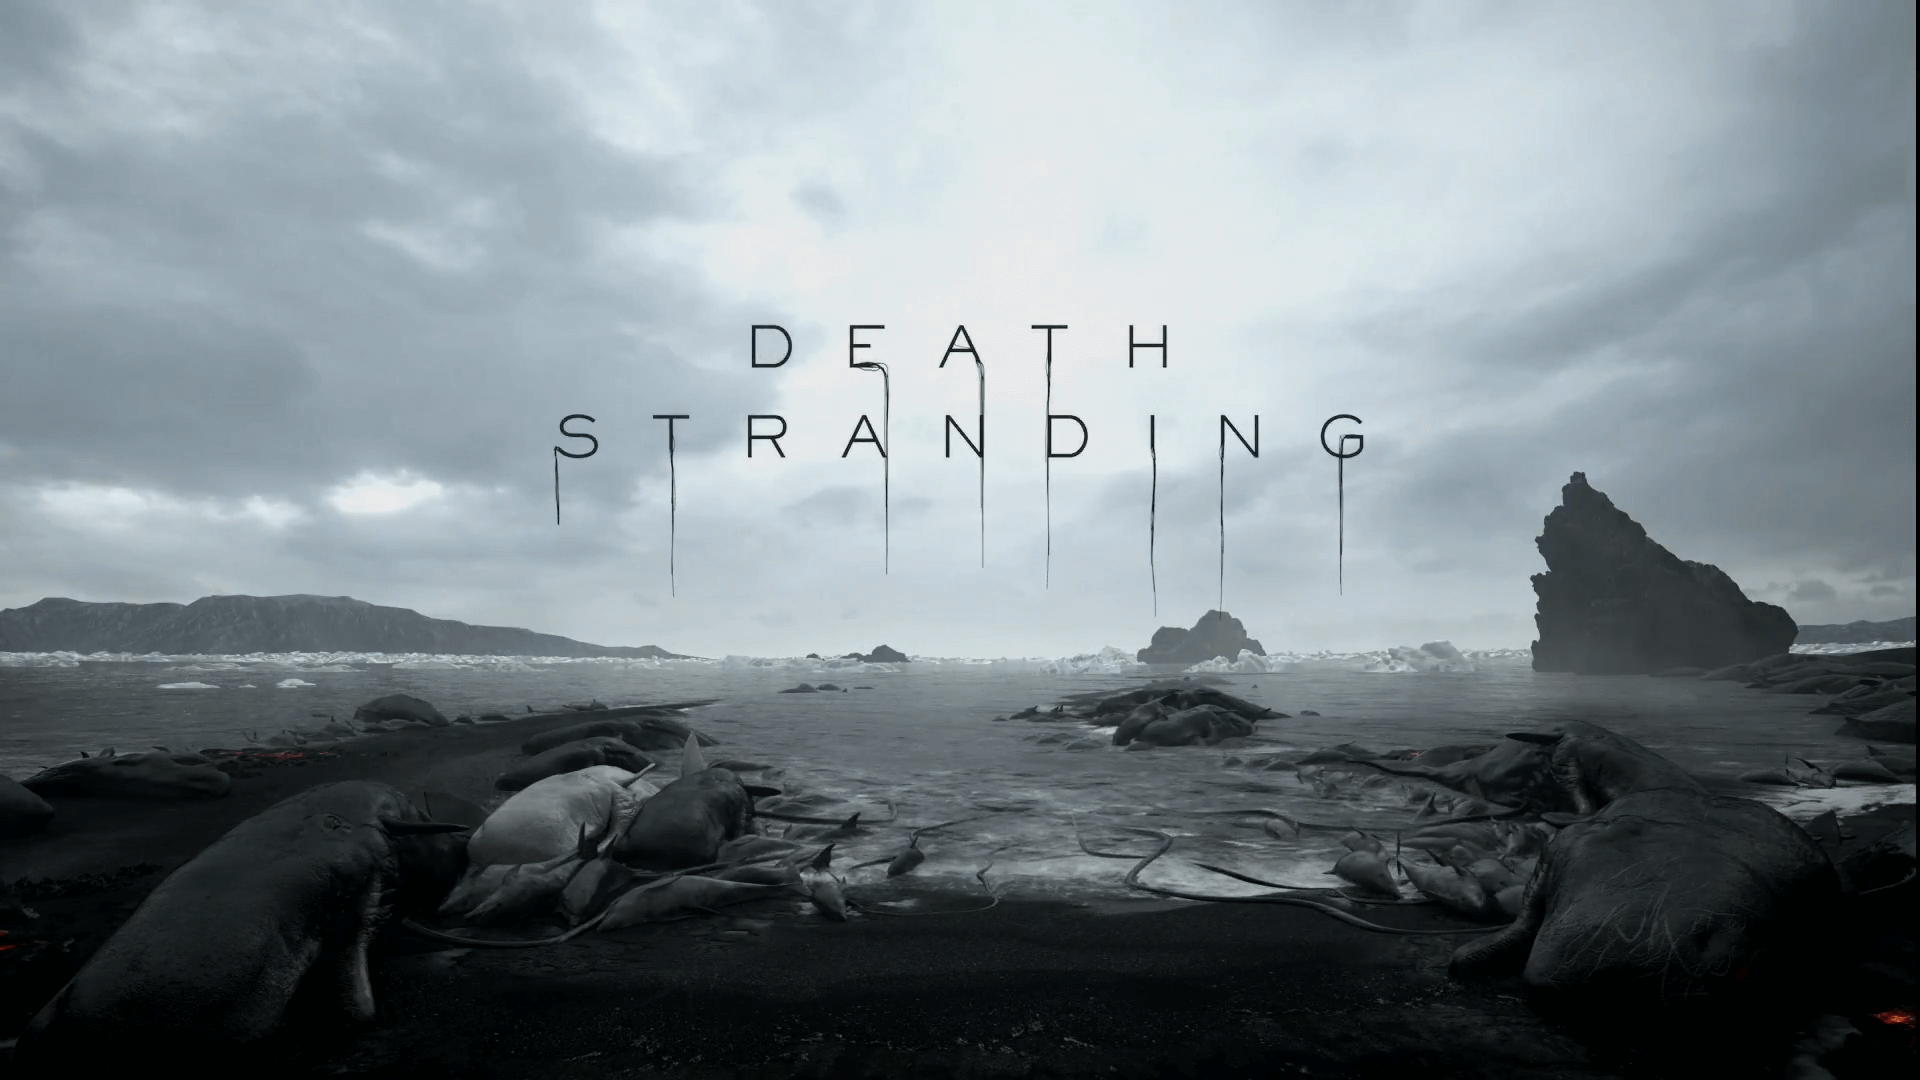 Here's The Death Stranding Music From The E3 2018 Trailer